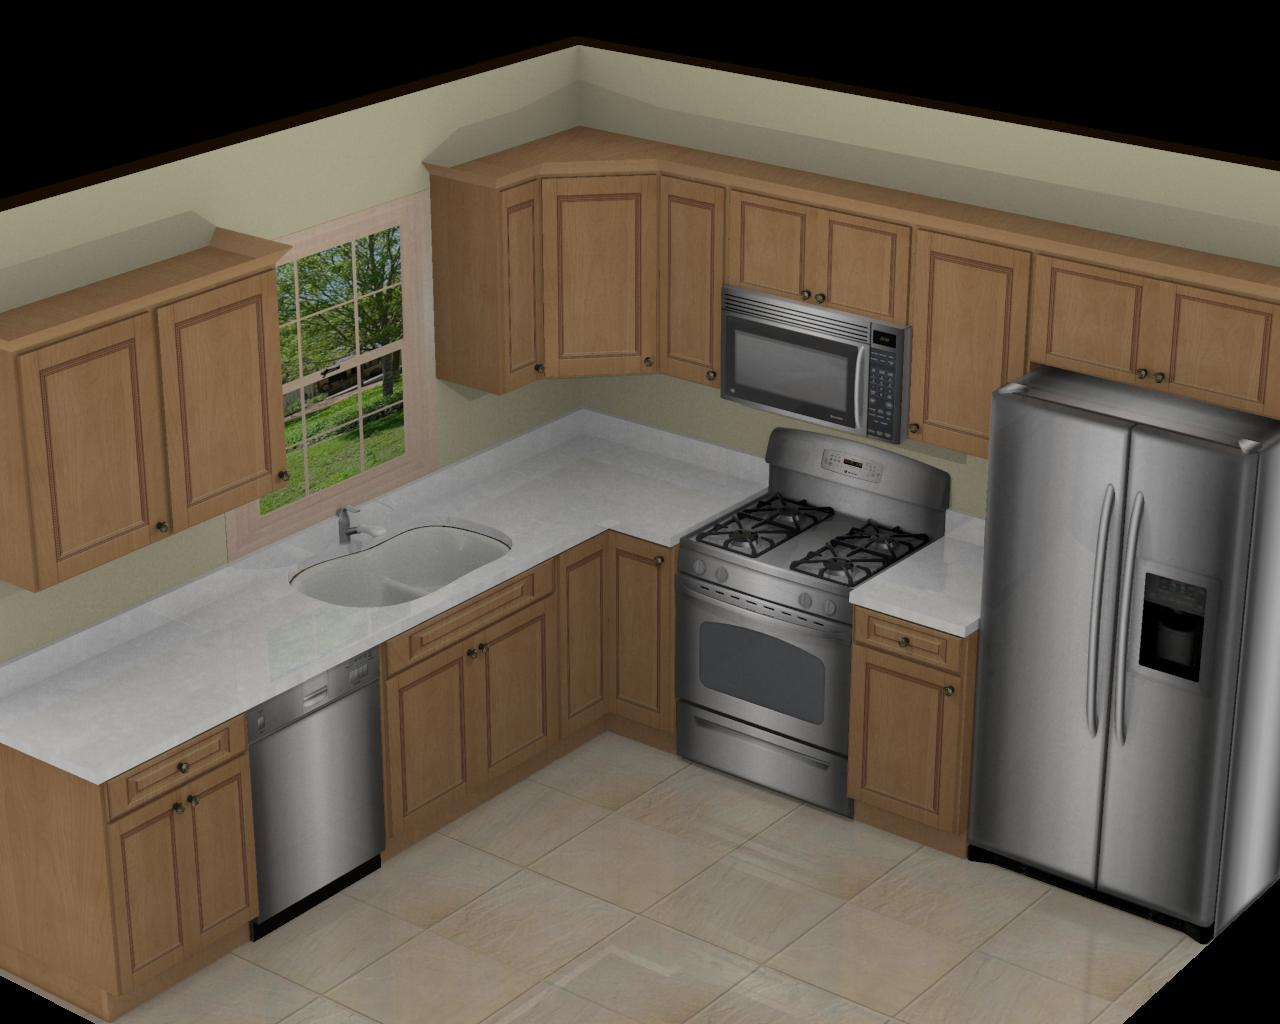 Foundation dezin decor 3d kitchen model design for Design my kitchen